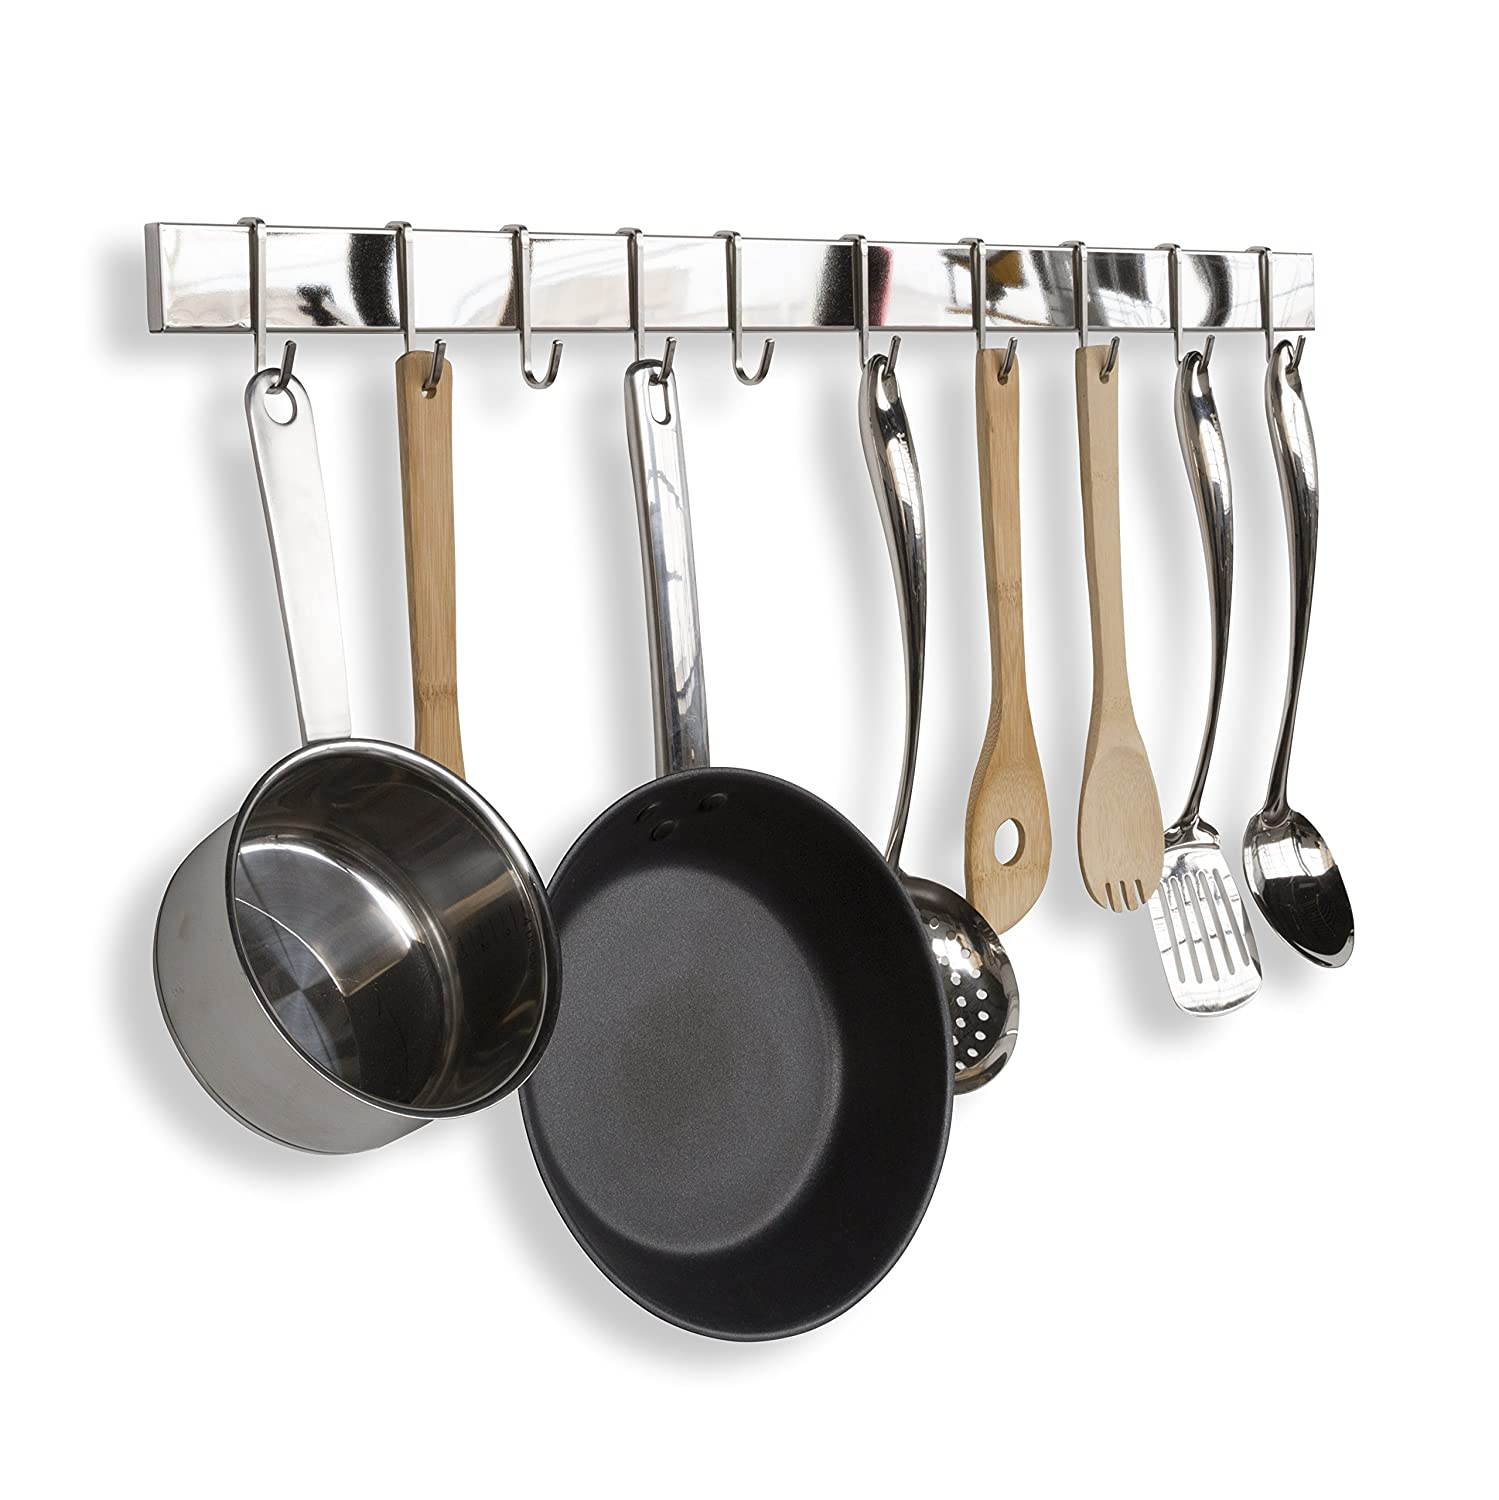 Stainless Steel Gourmet Kitchen Bar Rail Pot Rack for Pans Lids Wall Mount Hanging Utensil Organizer and Many More 30 Inch Silver (1) Fasthomegoods